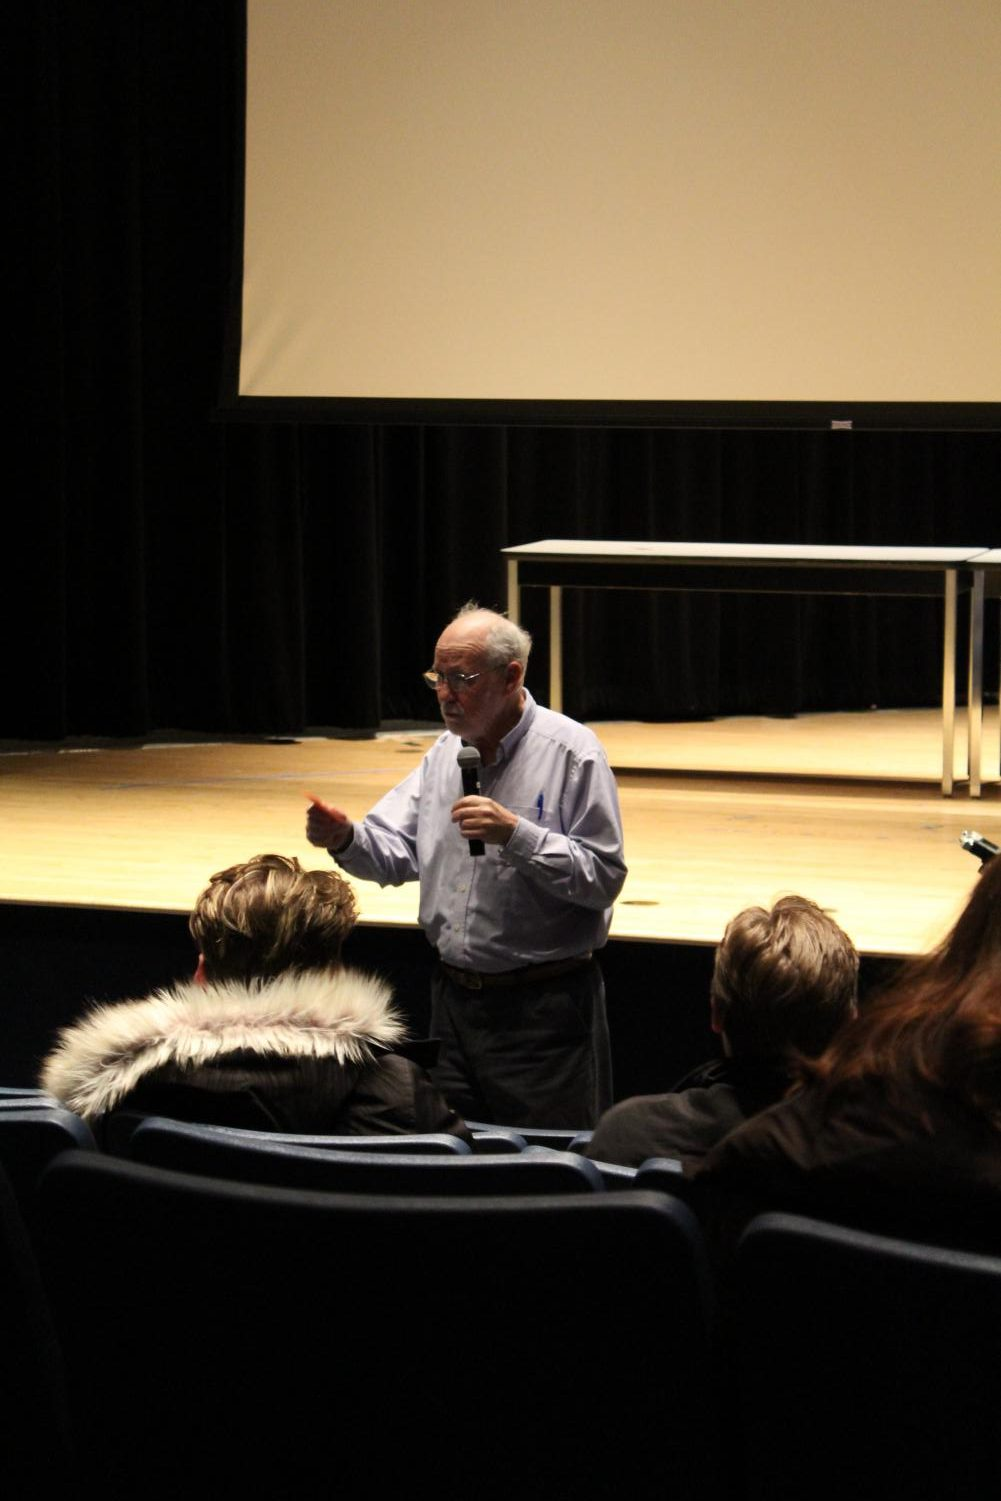 Professor Malone shared his teaching theory and recalled his first time teaching during his last lecture on Dec. 4.